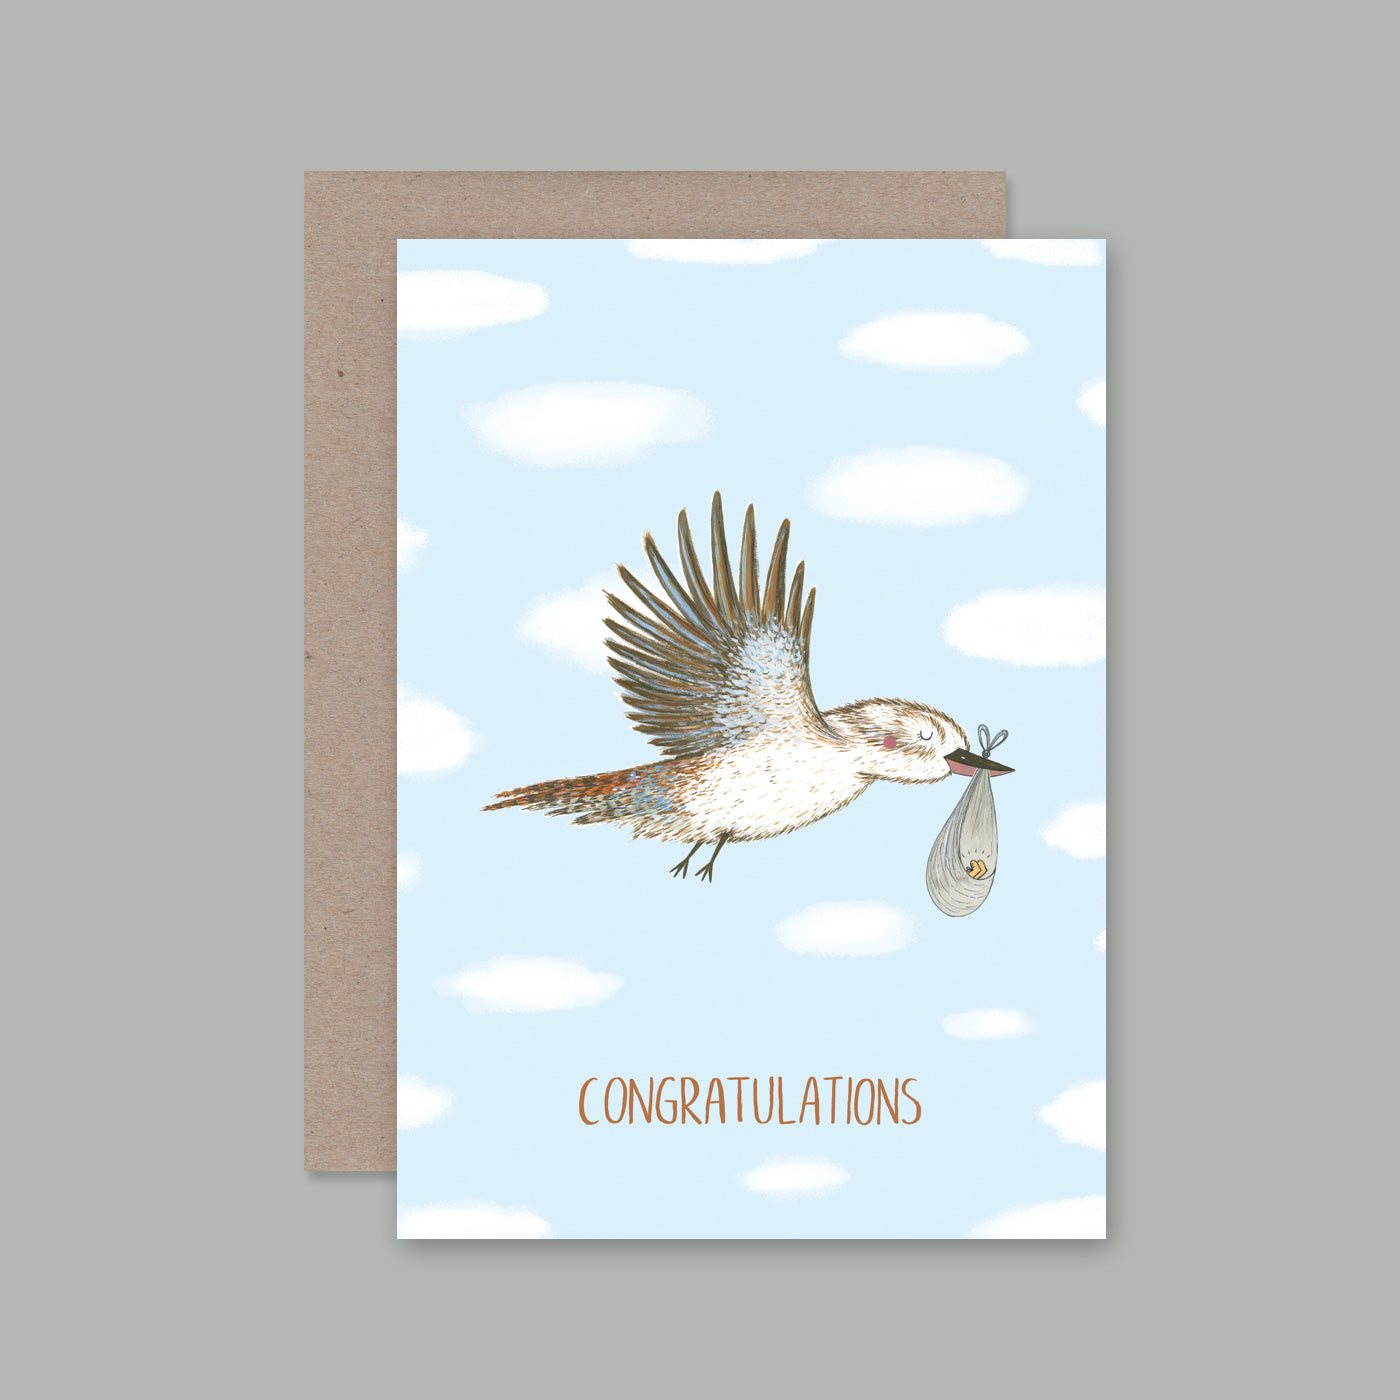 Congratulations Card | AHD Paper Co.